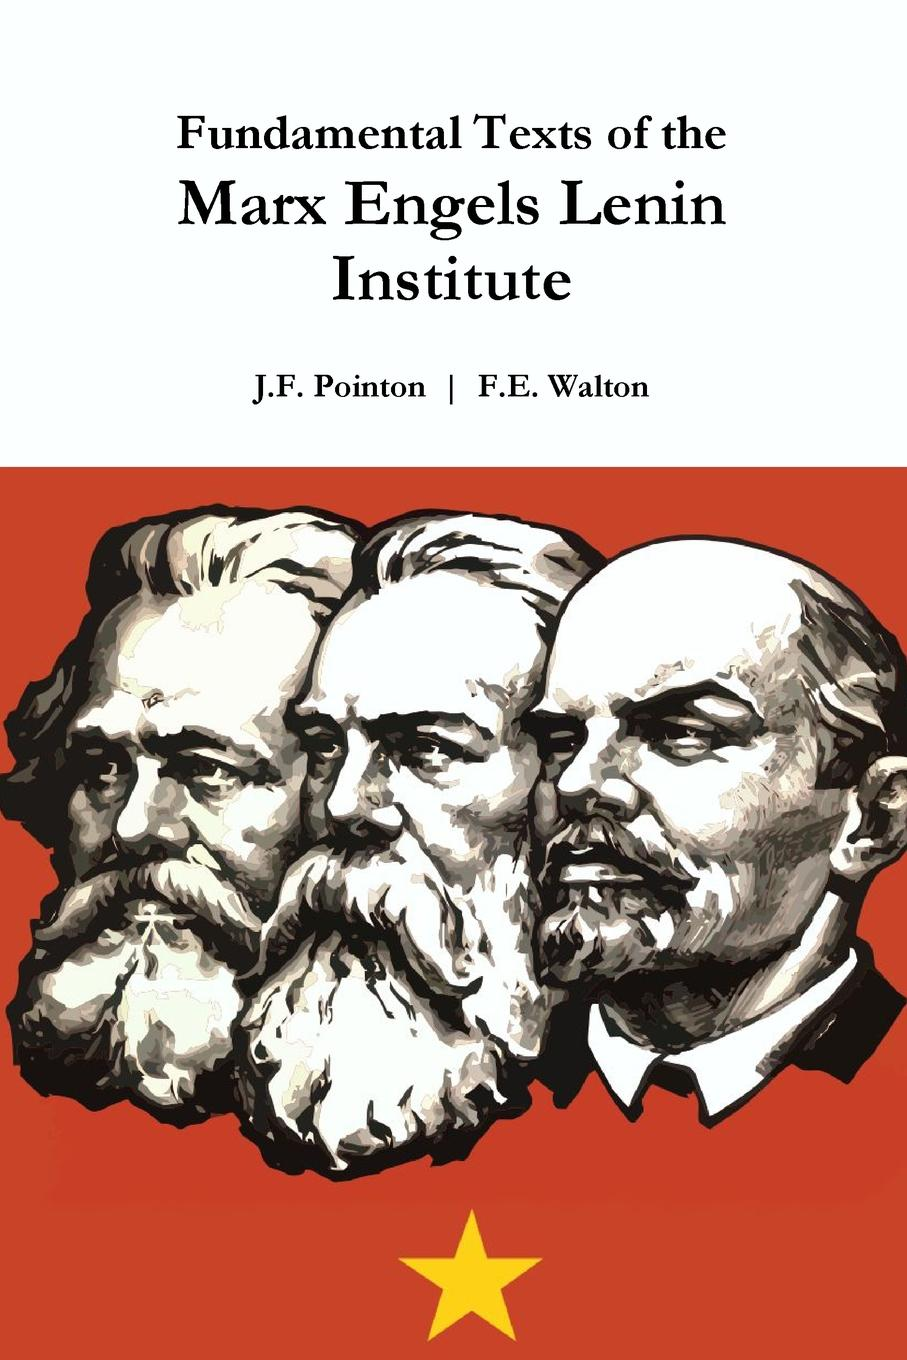 J.F. Pointon, F.E. Walton Fundamental Texts of the Marx Engels Lenin Institute the mother of invention the legacy of barbara marx hubbard and the future of you